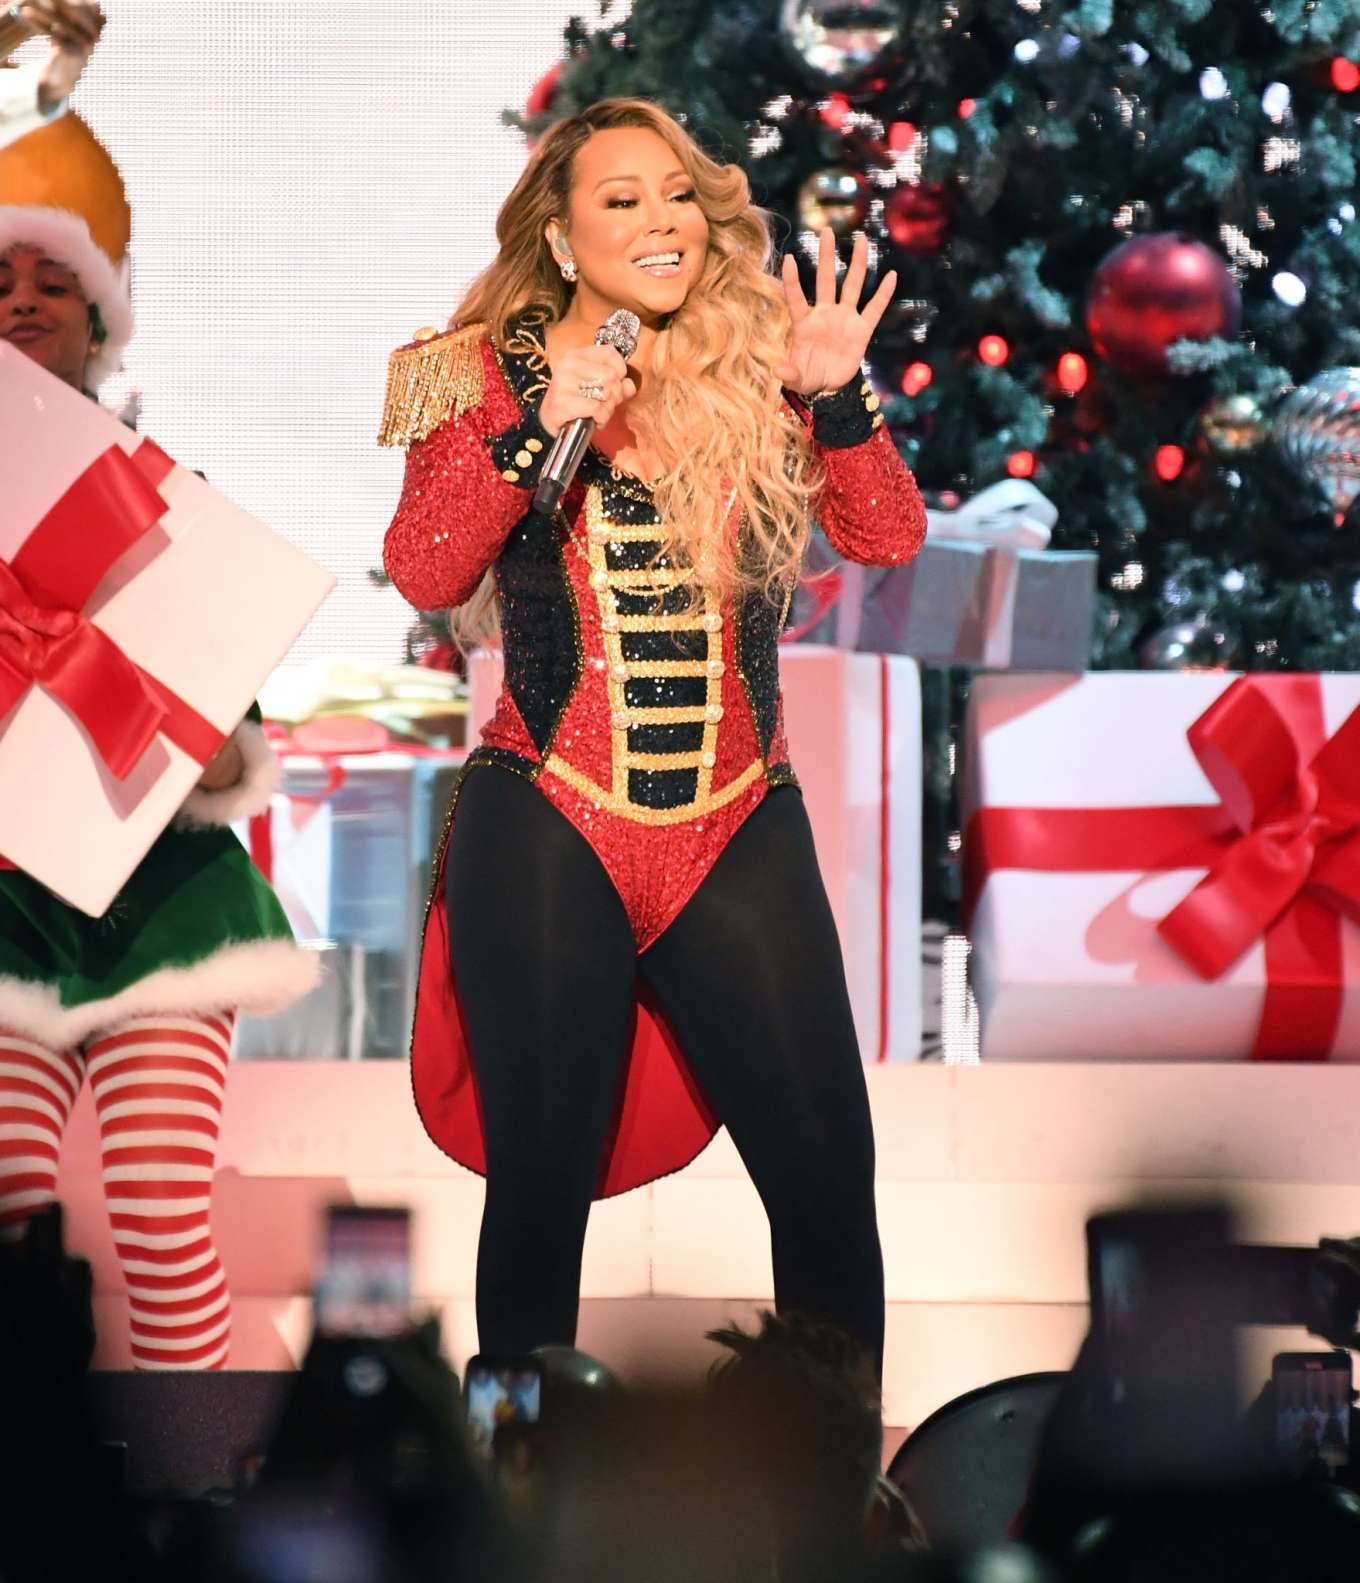 Mariah Carey All I Want For Christmas Is You: Live Onstage During 'All I Want For